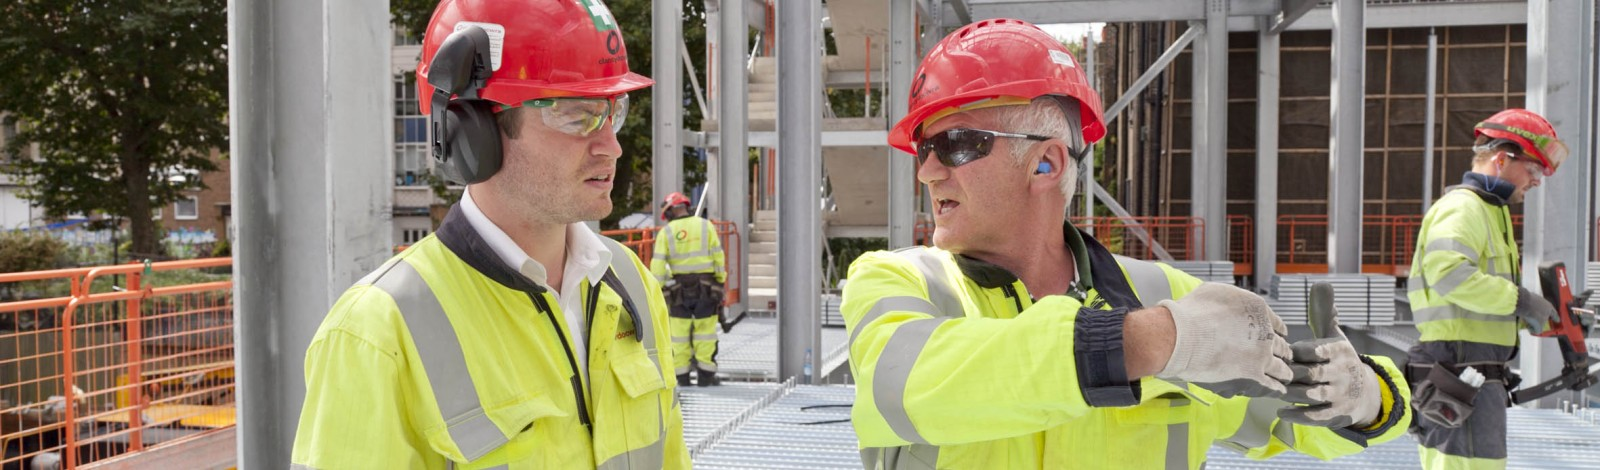 Georgiana Street Substation, St. Pancras – design and construction of a new substation - Clancy Docwra